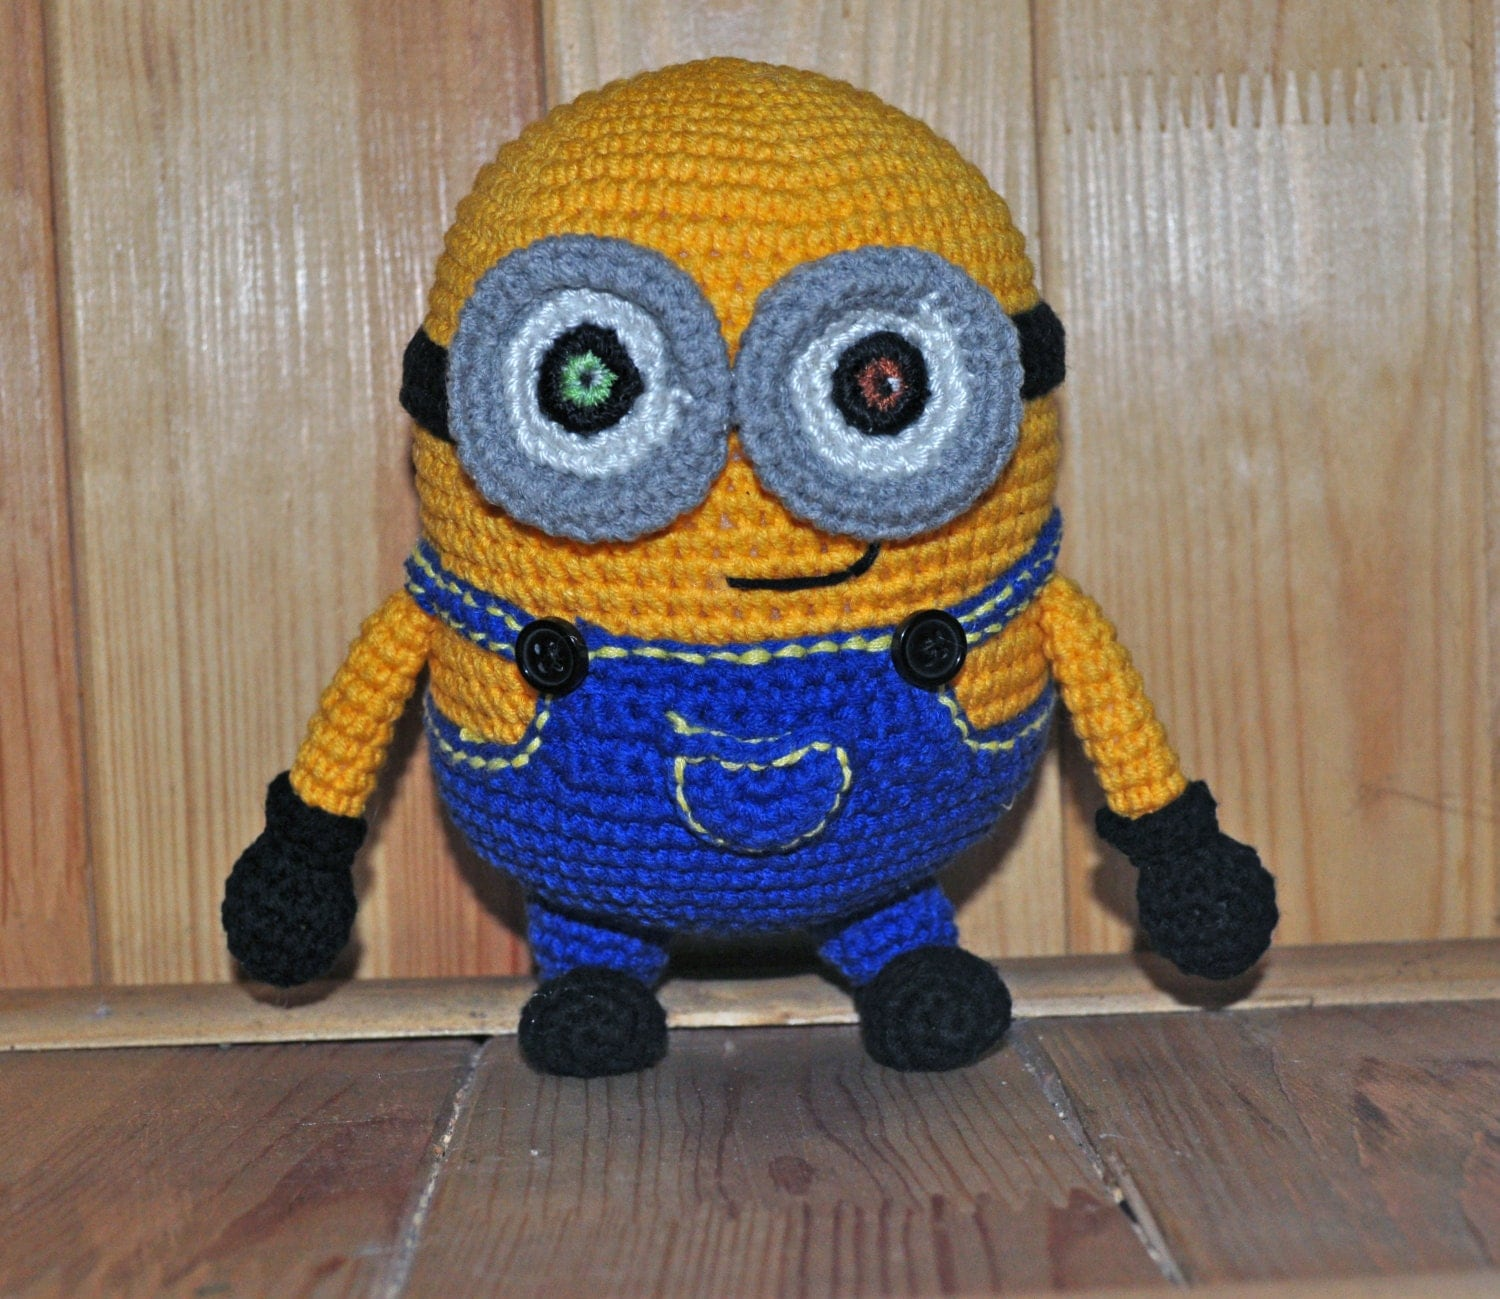 Free Crochet Pattern For Bob The Minion : crochet Minion Bob / Minion / Minion amigurumi